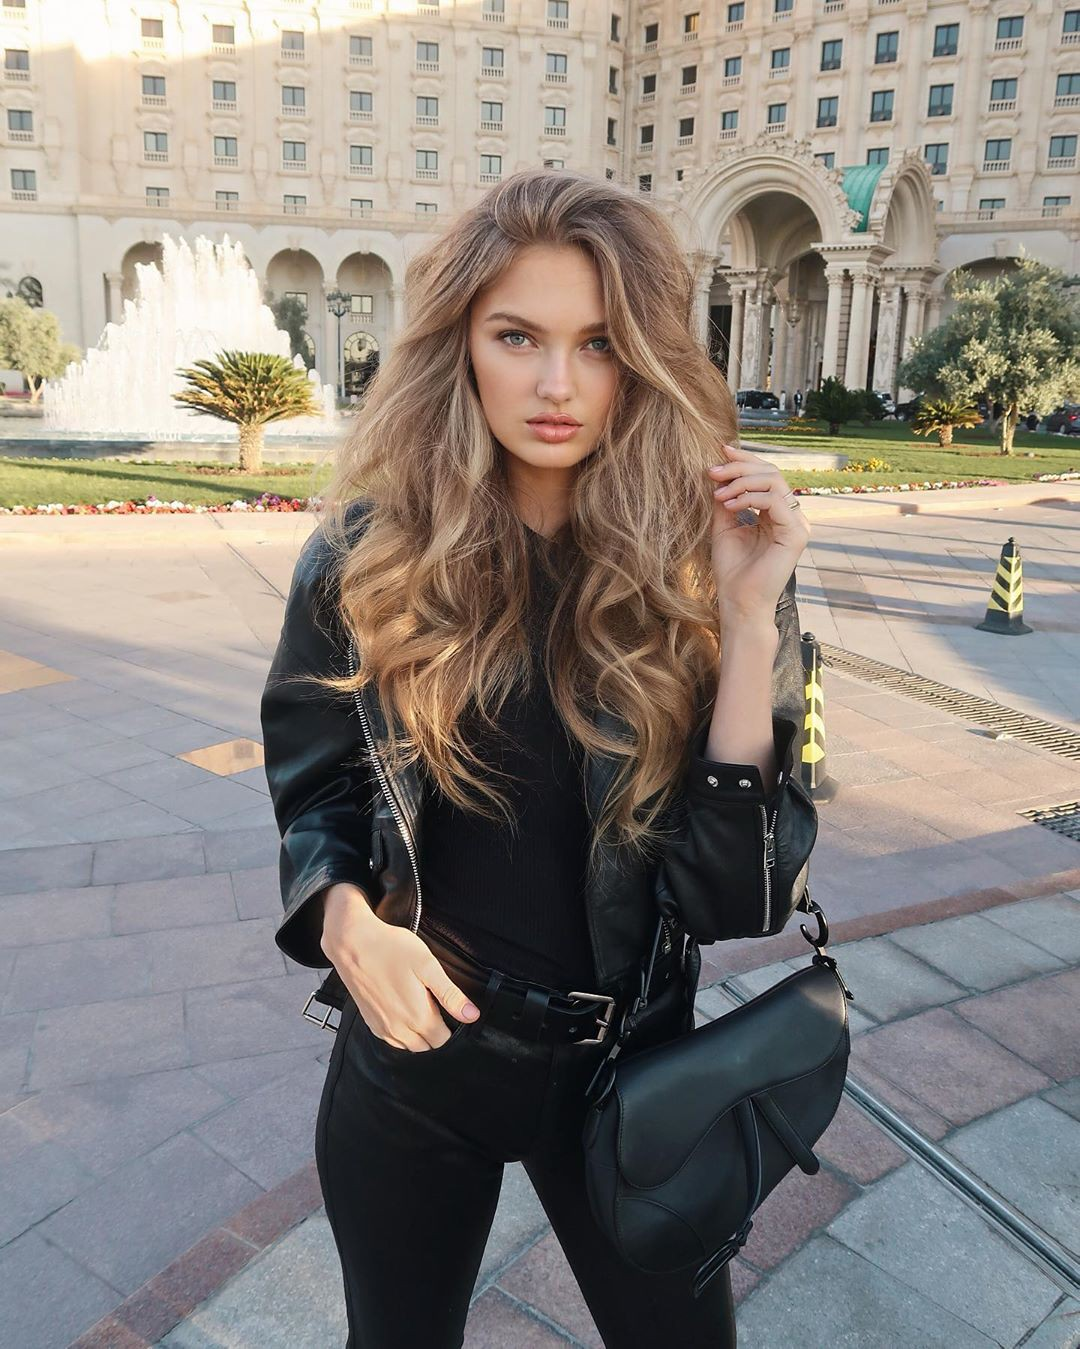 black dress for women with leather leather, photography ideas, Beautiful Lips